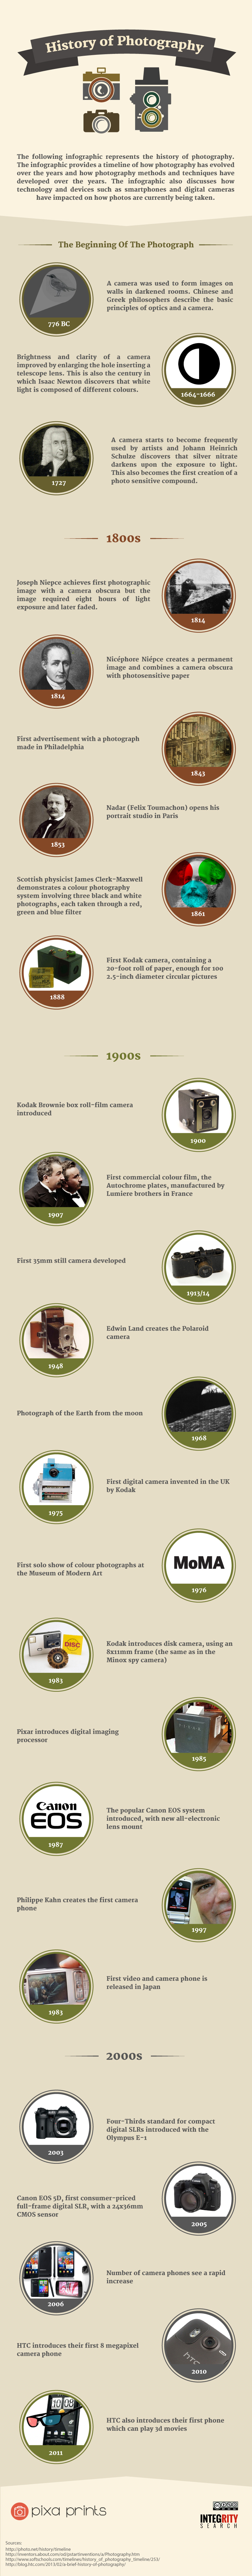 camera history infographic